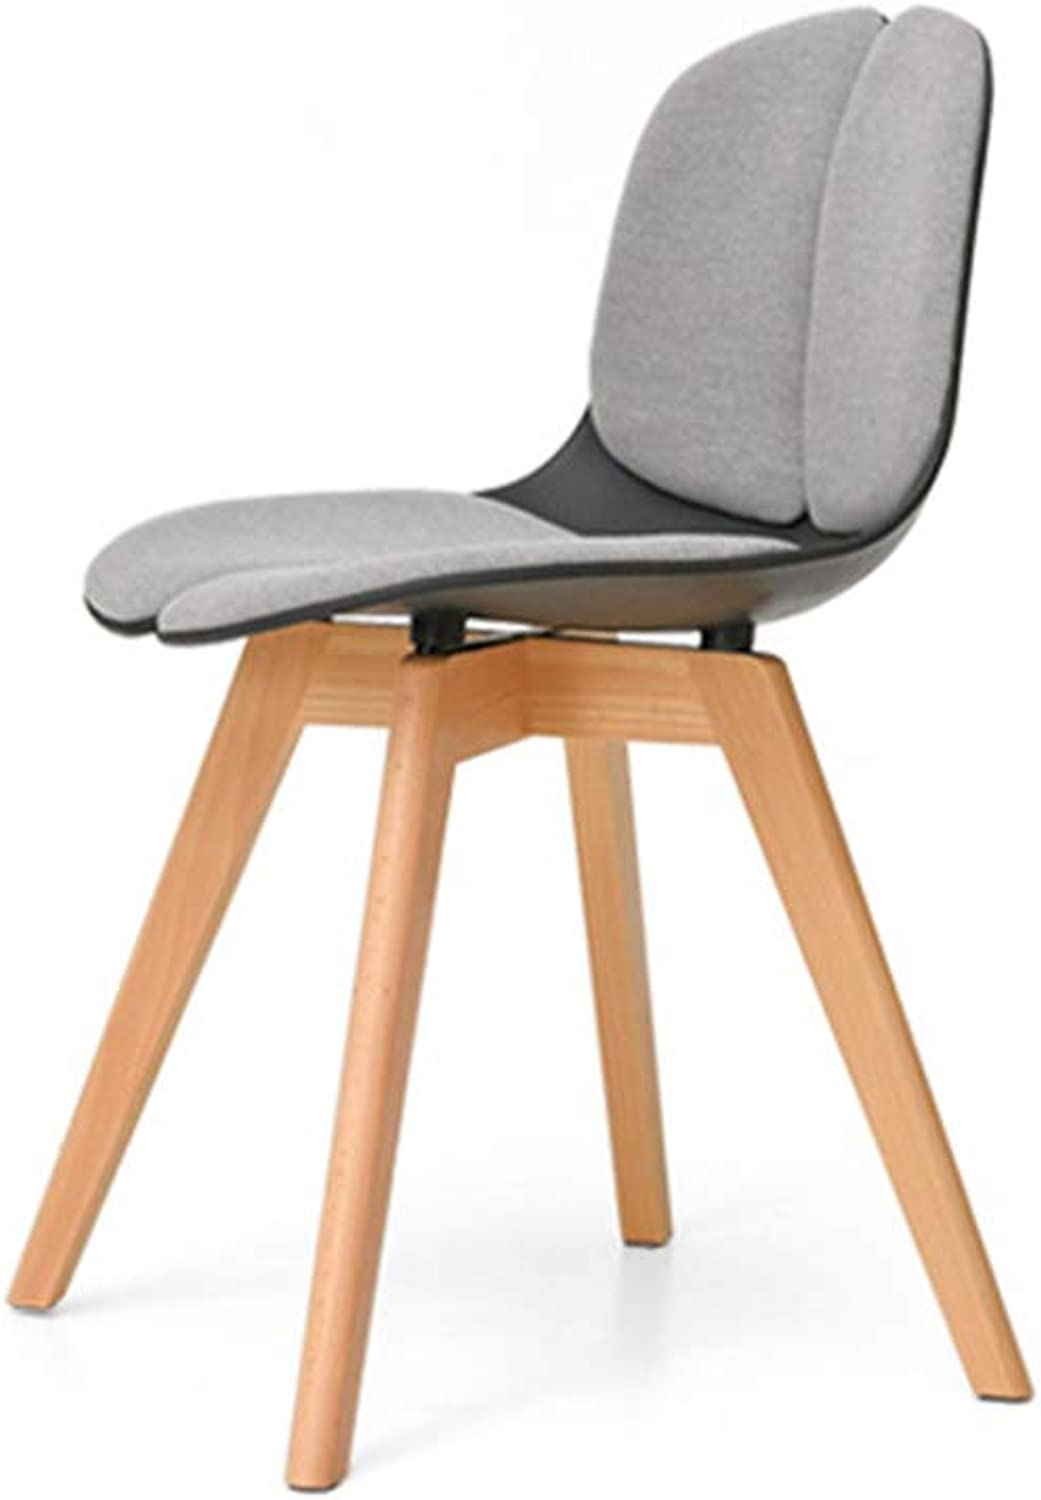 Dining Chairs Seat Chair Solid Solid Solid Wood Creative Household Leisure ZHANGAIZHEN (color   BLACK) a91210